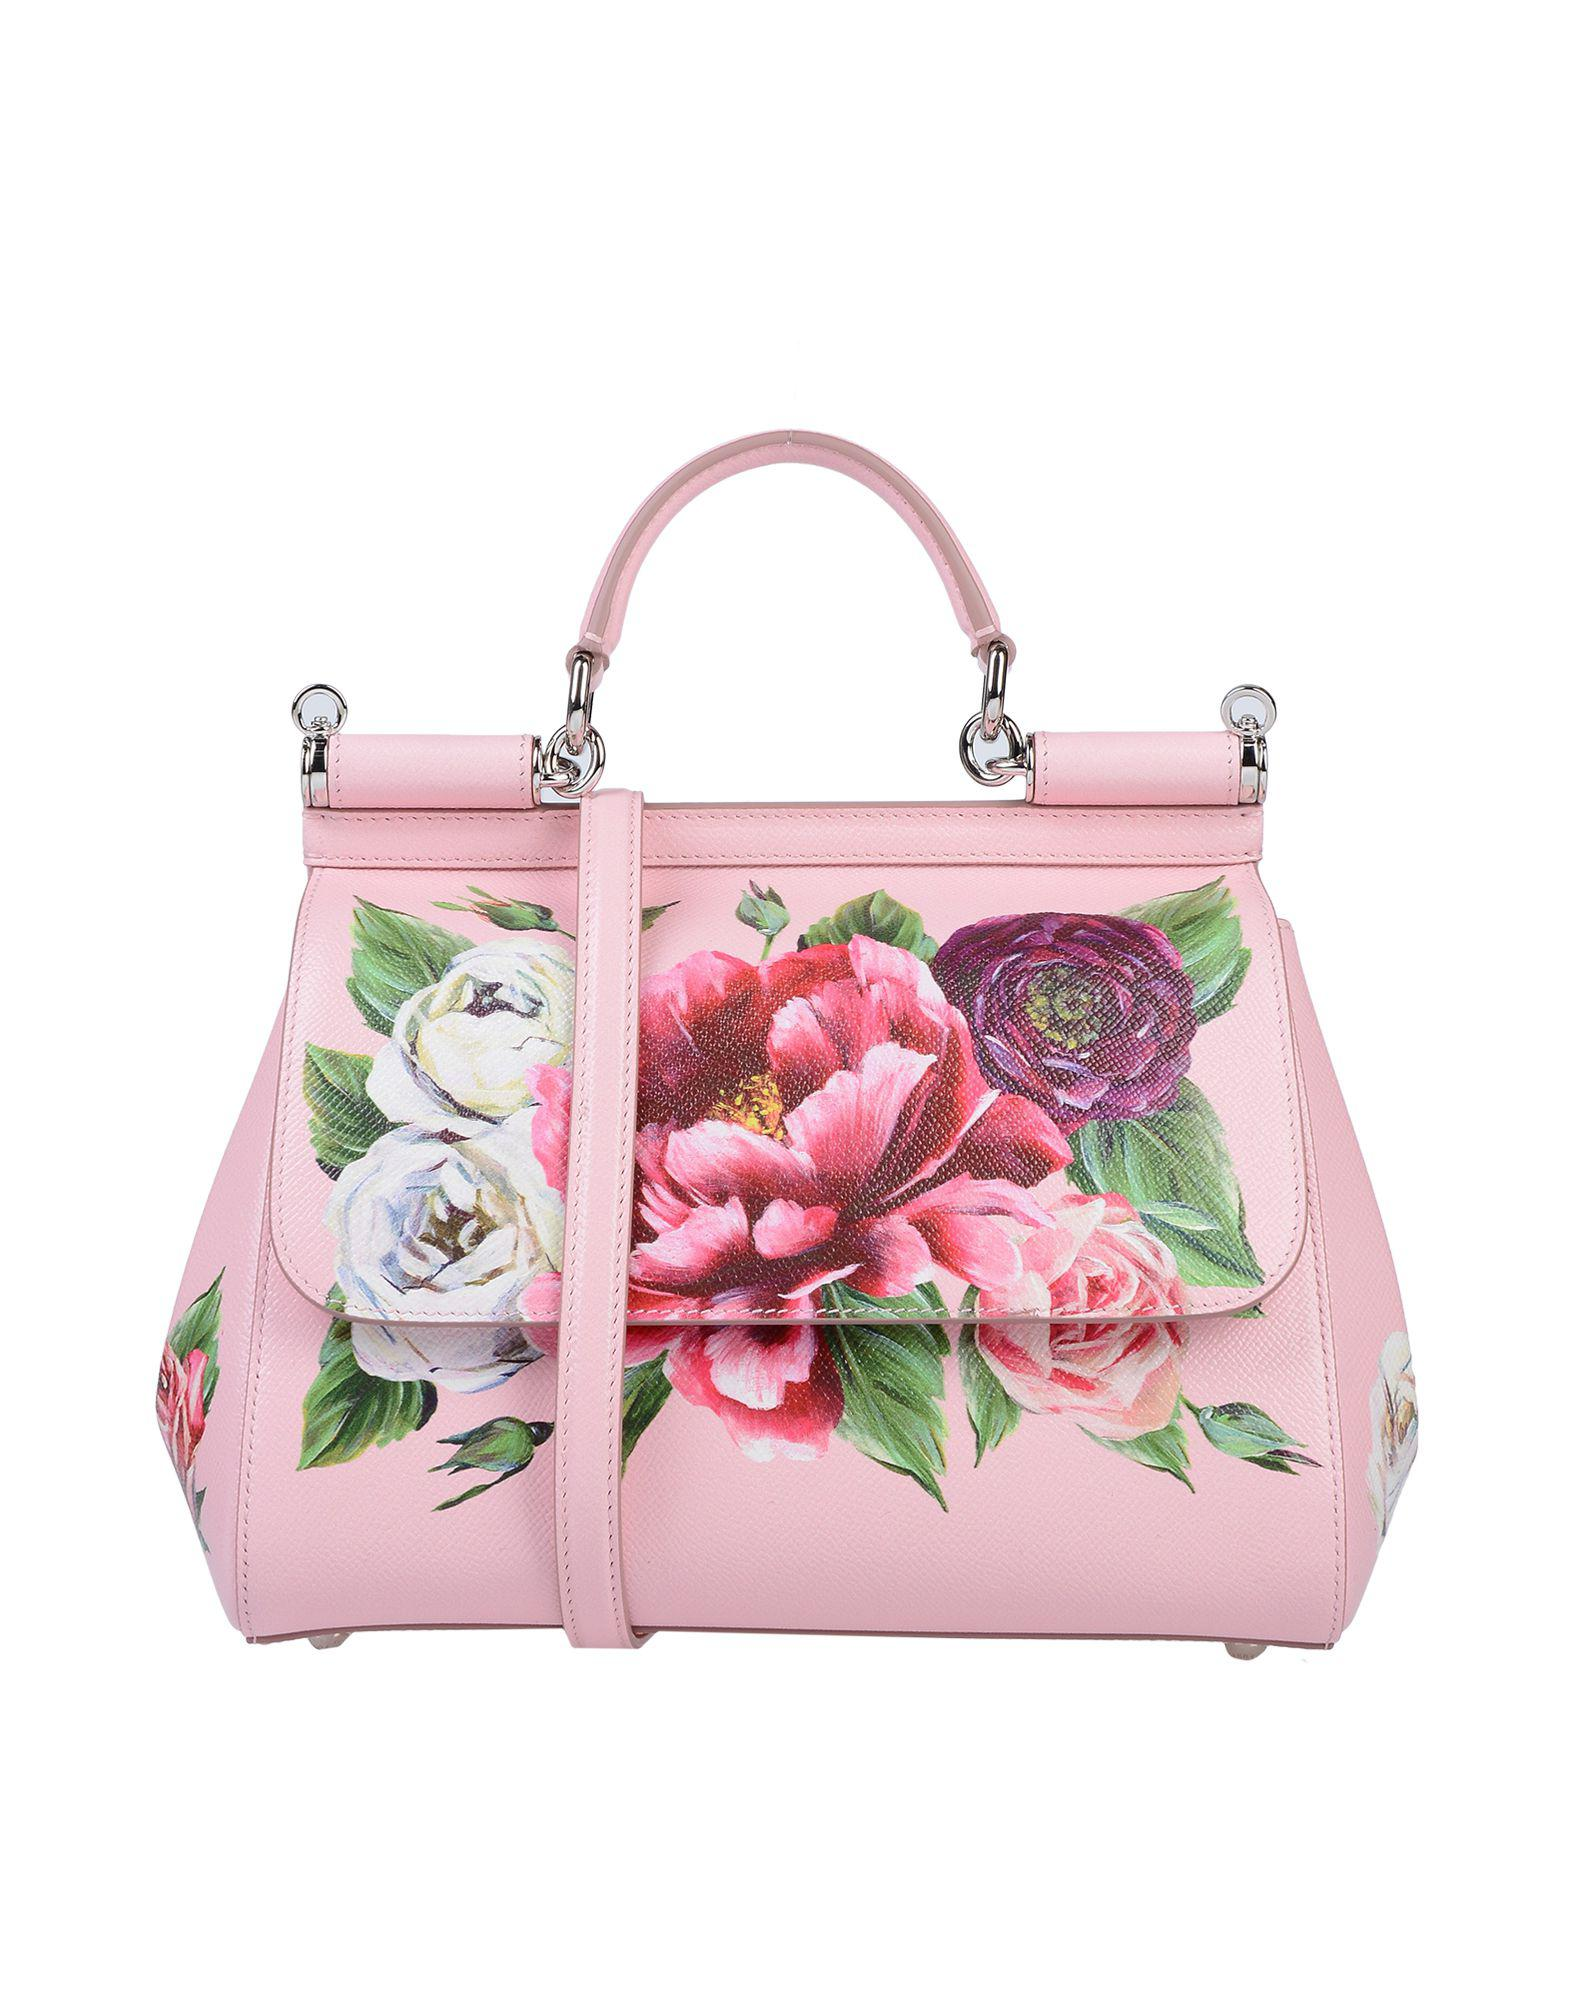 Lyst - Dolce   Gabbana Sicily Tote Bag in Pink - Save 49% 13f2fca229351